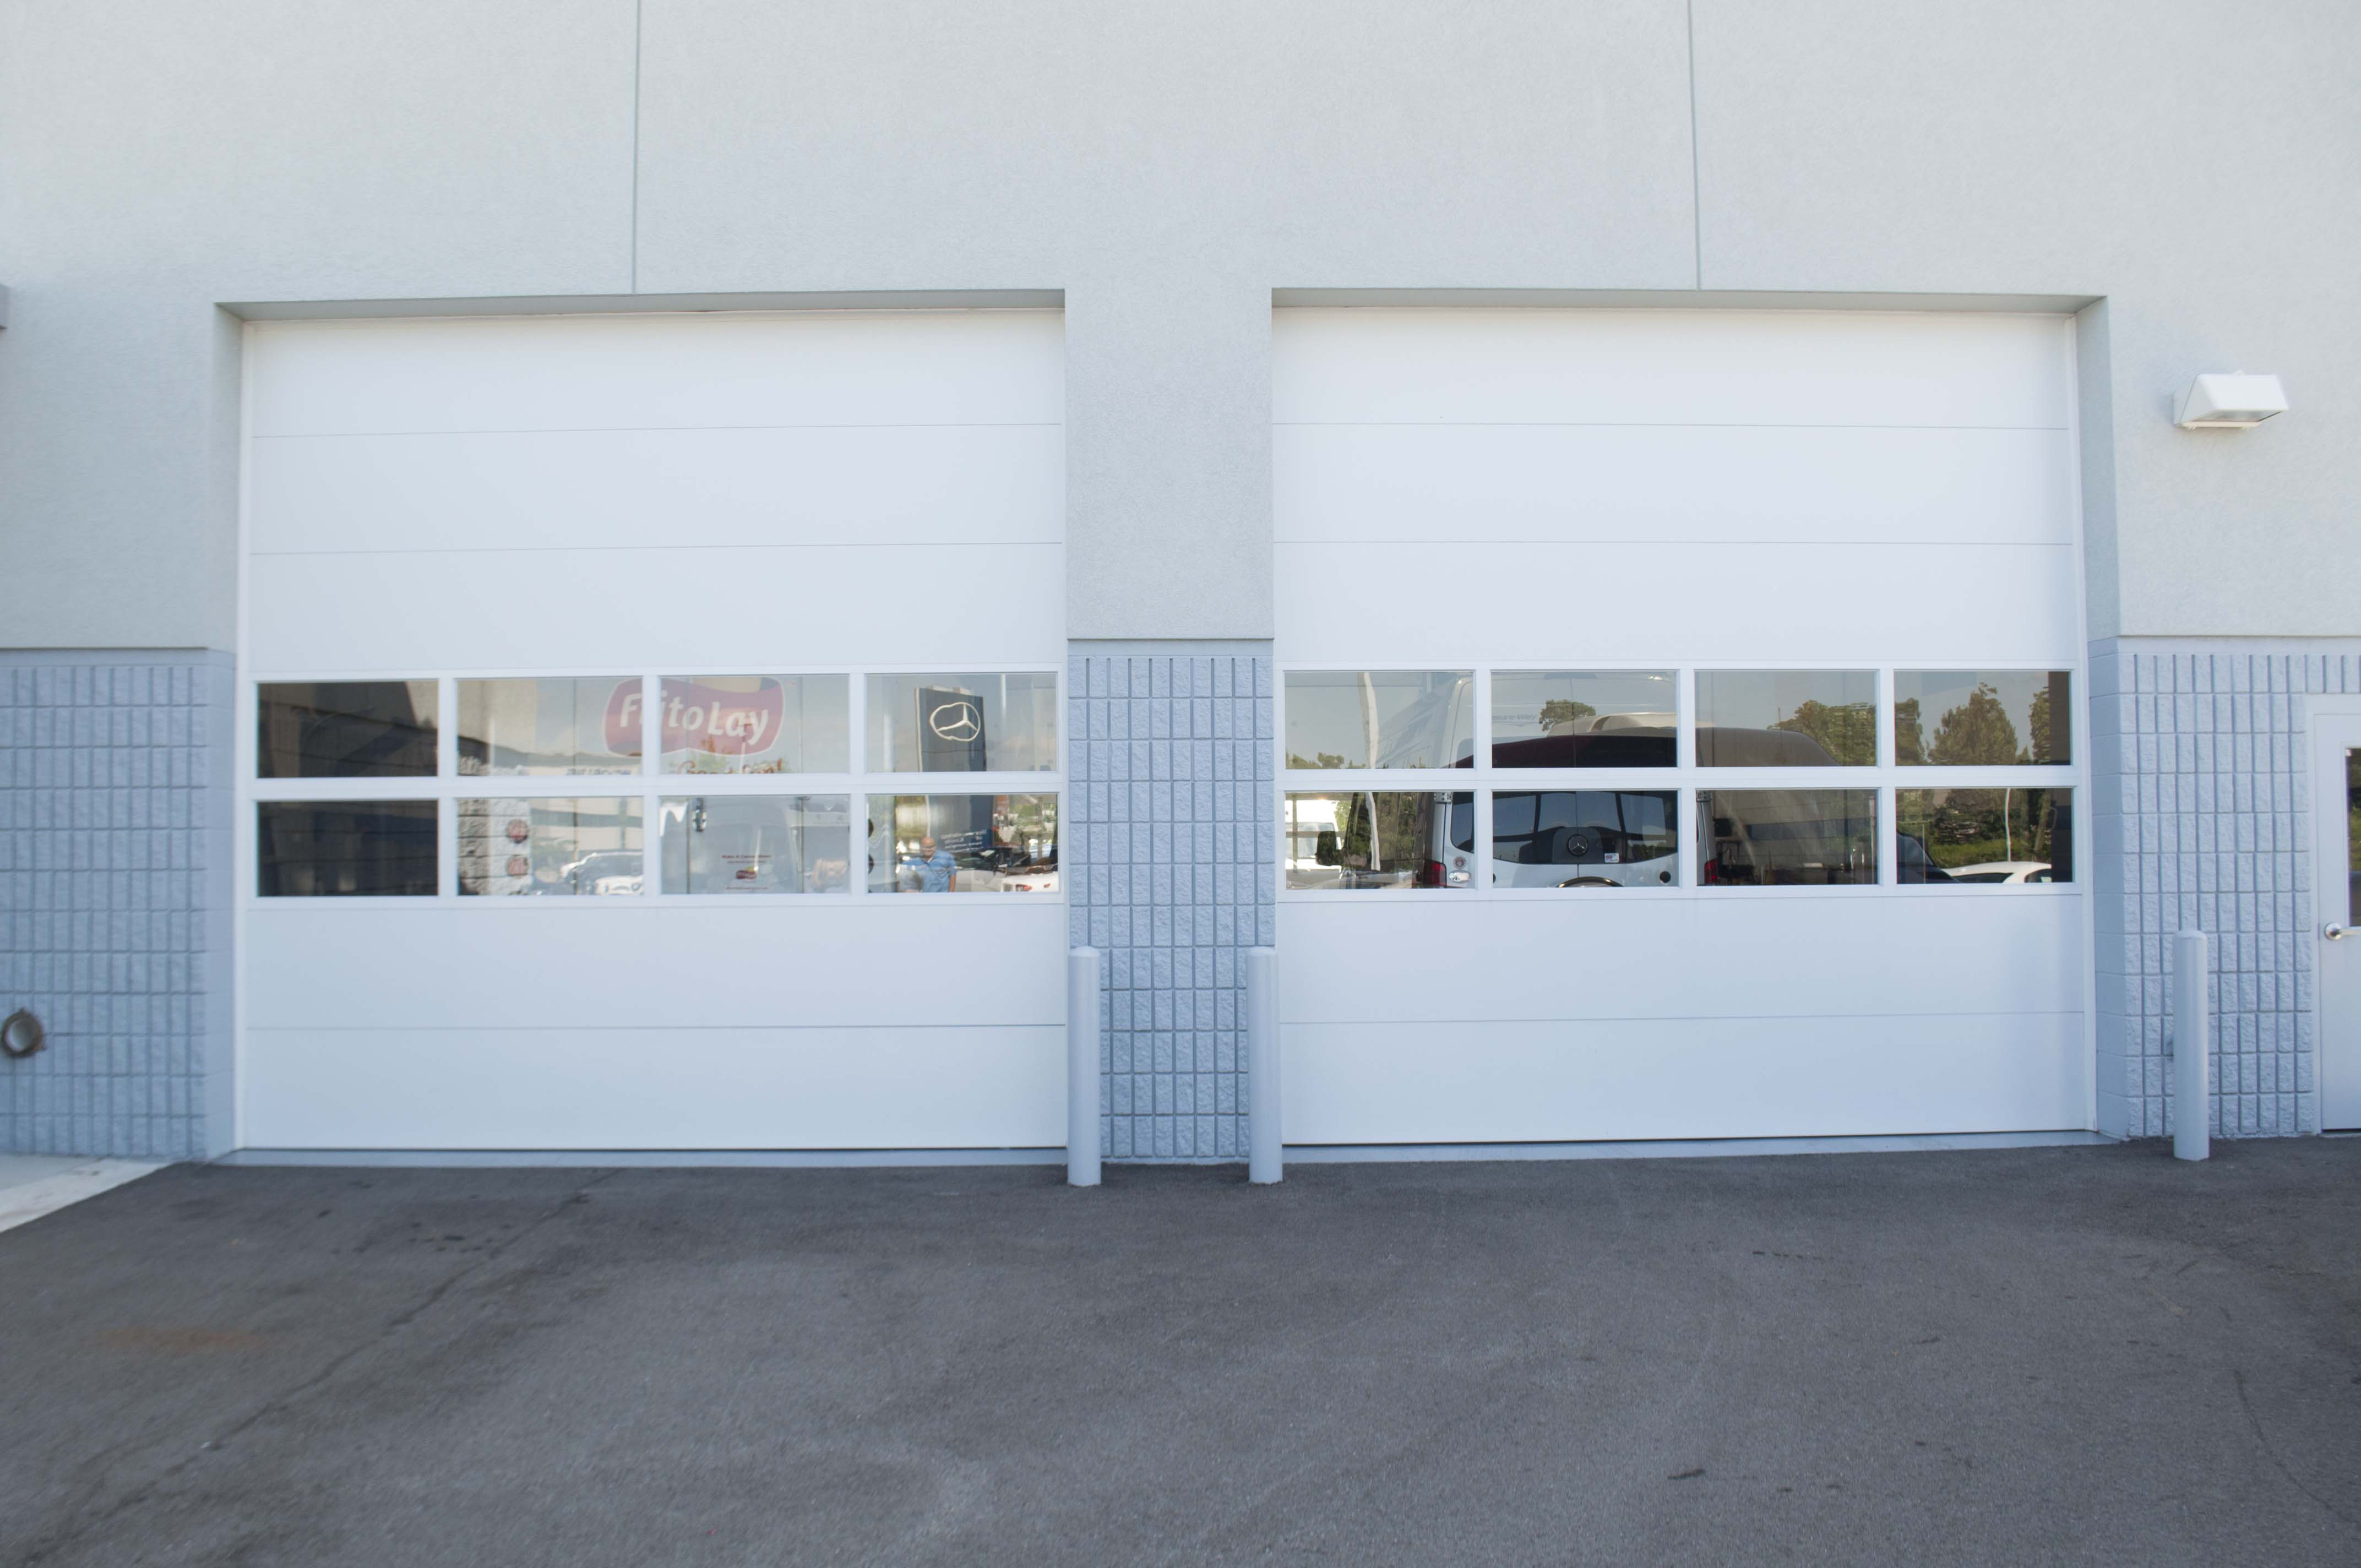 Garage Doors Knoxville Knoxville Commercial Garage Door Projects Overhead Door